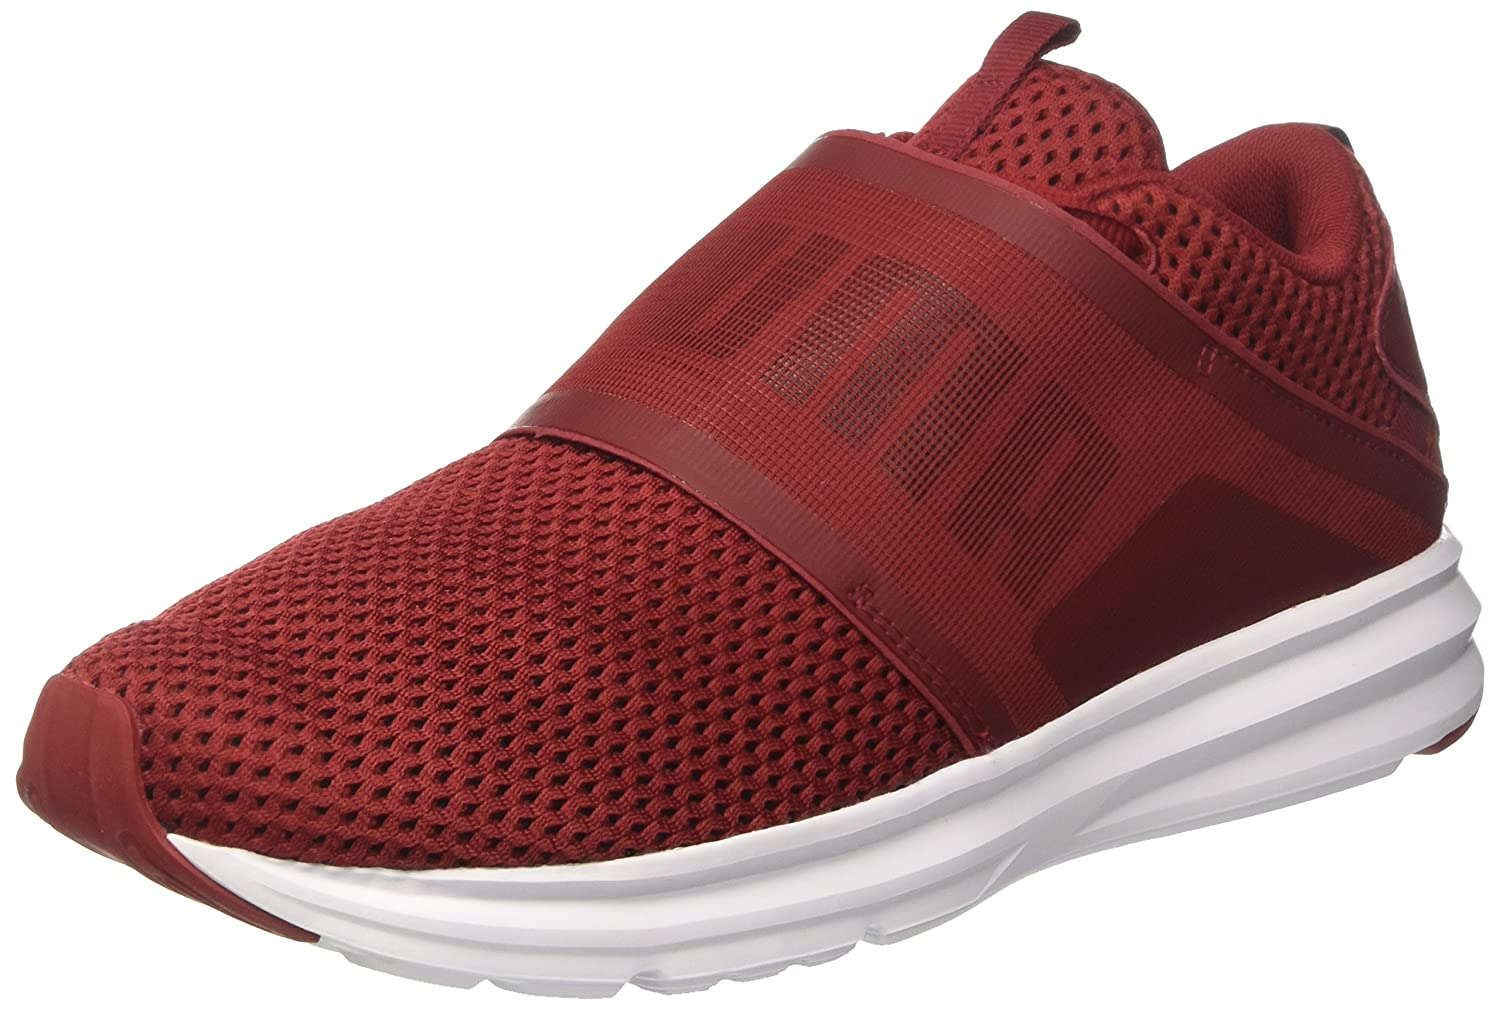 f7e270bb5e0 Puma Men s Red Dahlia-Black Running Shoes-8 UK India (42 EU) (19048102)   Buy Online at Low Prices in India - Amazon.in